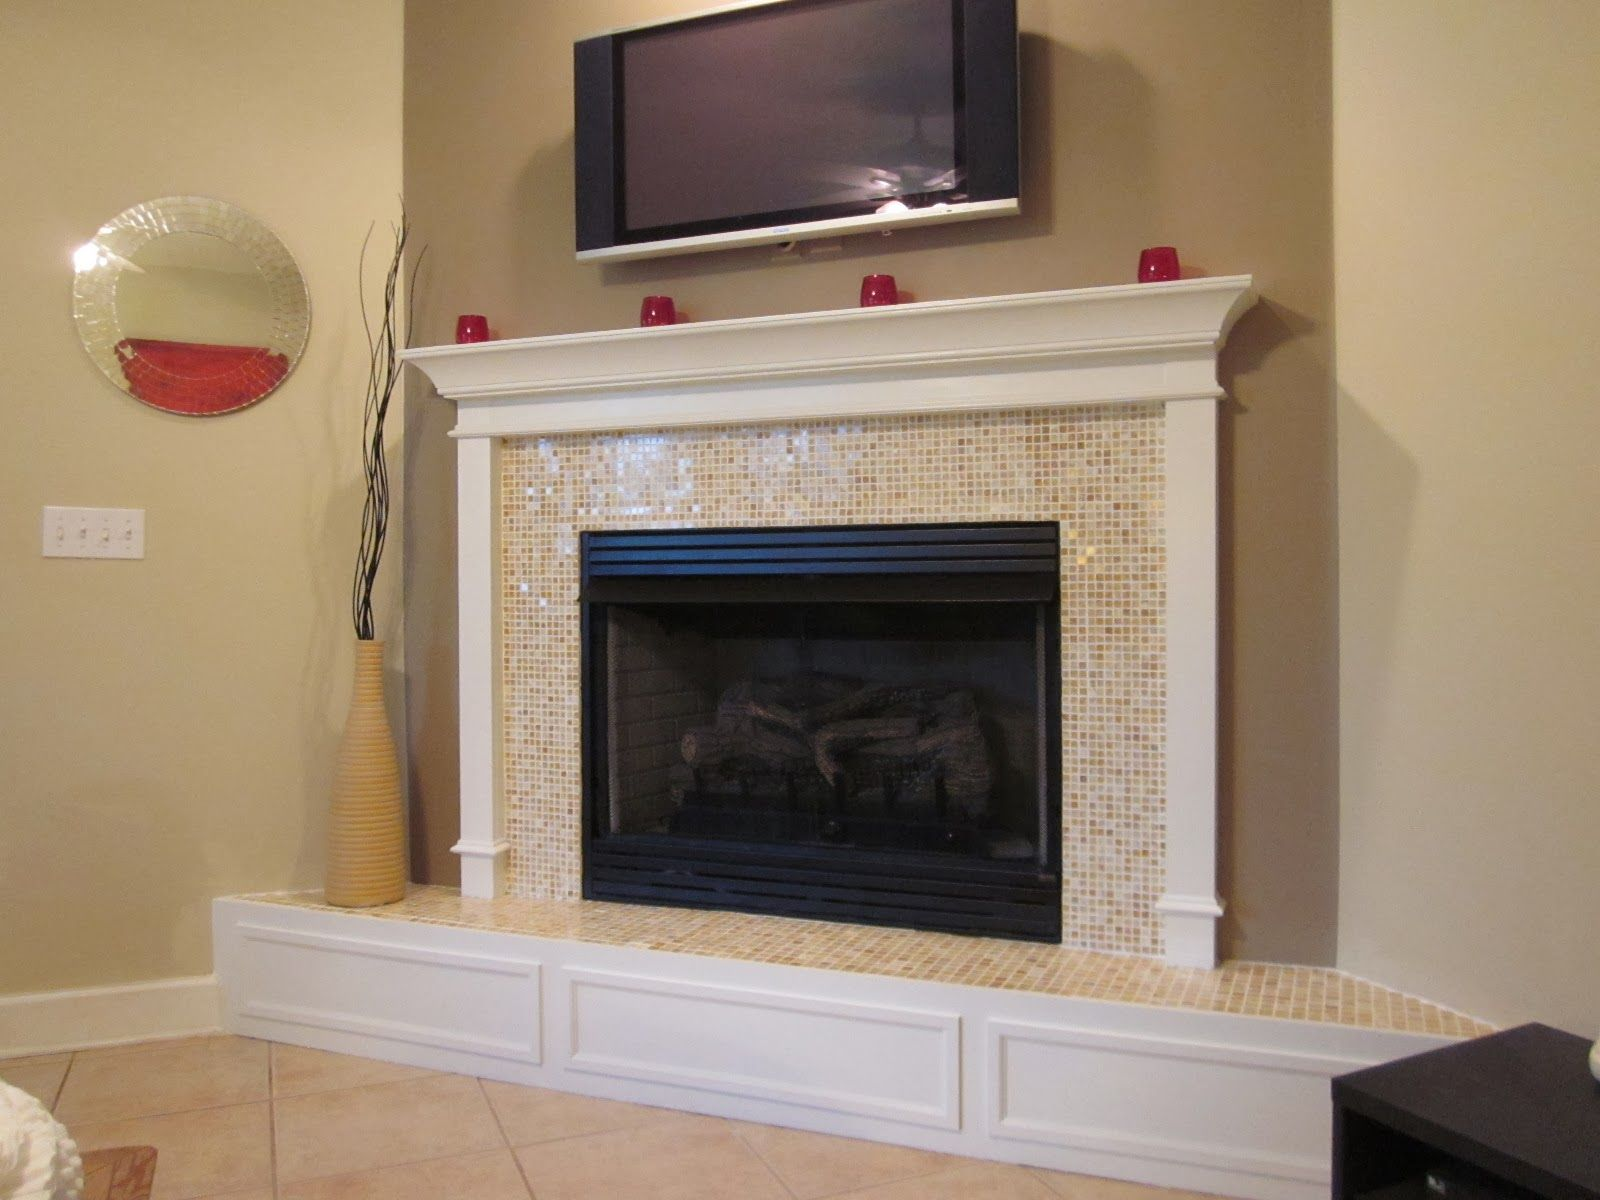 Tile Fireplace Mantels black marble fireplace hearth: white marble tile fireplace, black